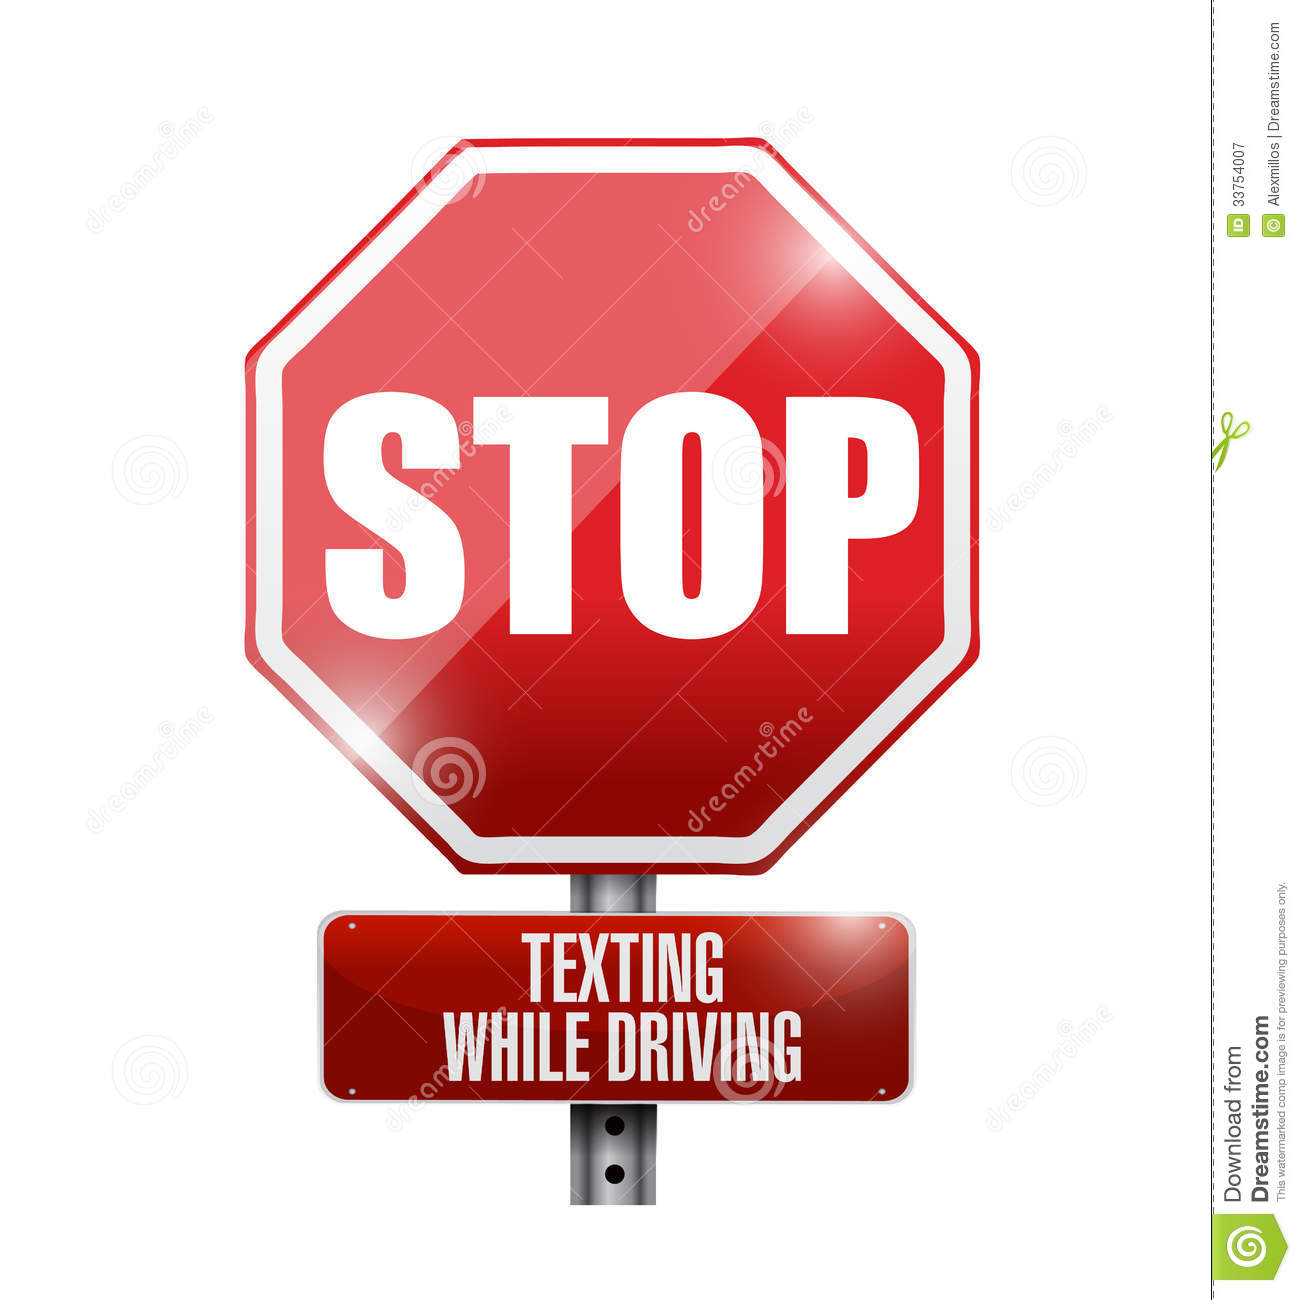 stop dating over text